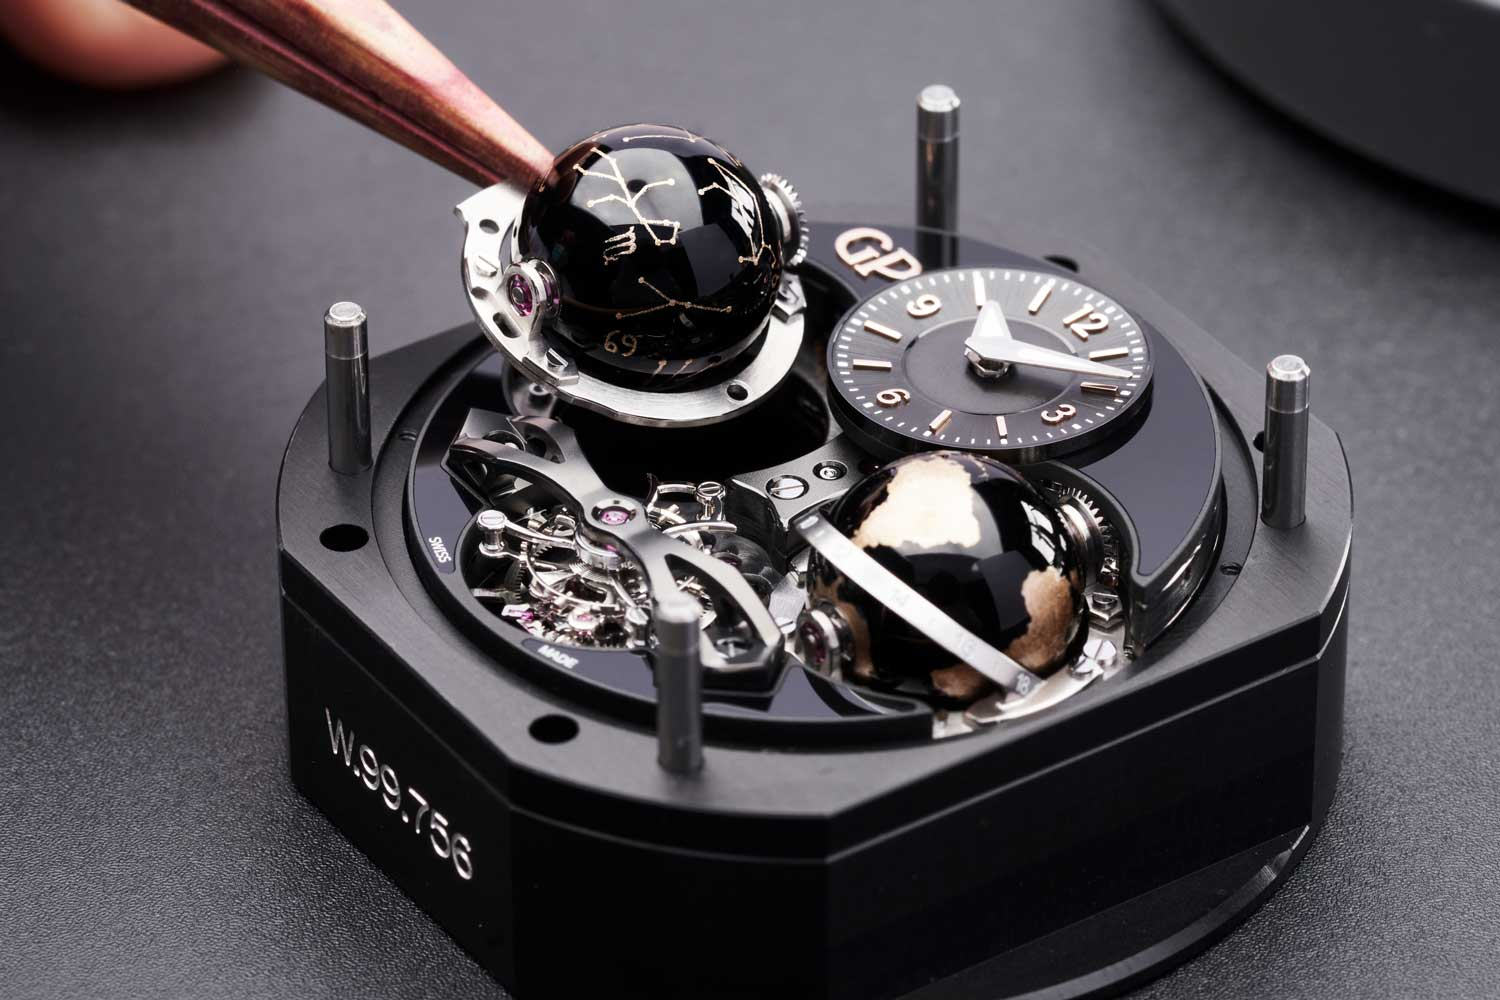 The watch uses the bélières system to set its mechanisms as seen on the back of the case.